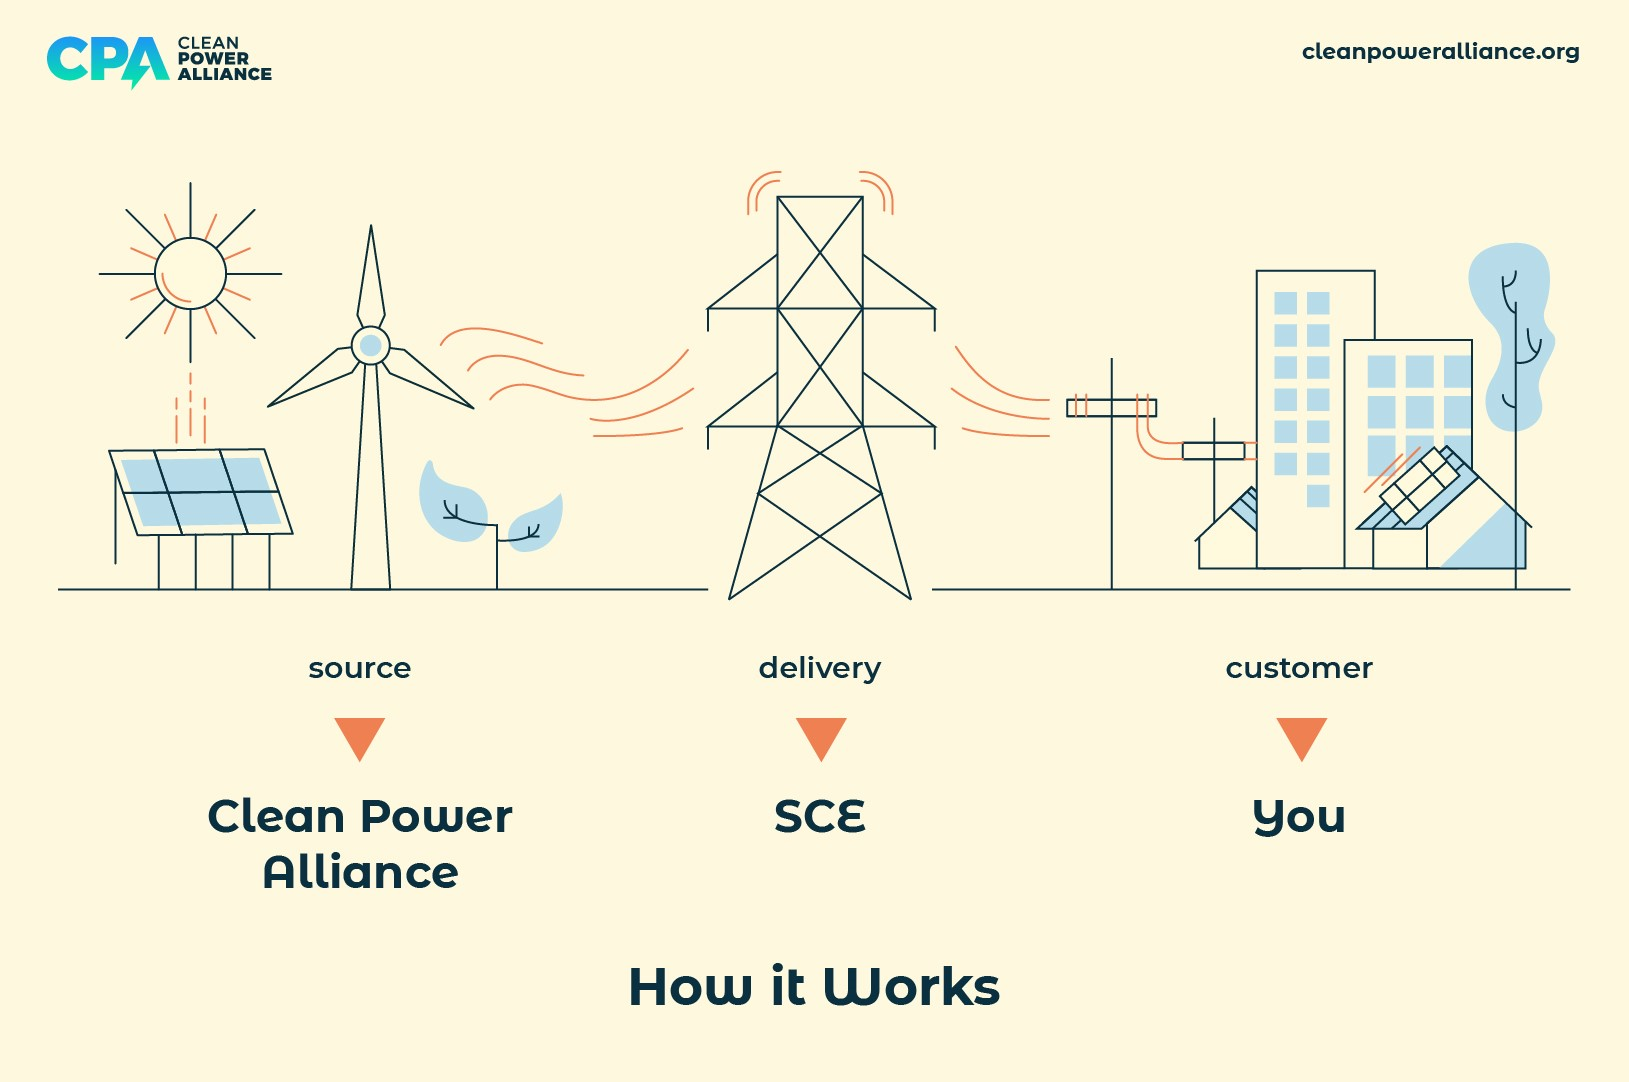 Clean Power Alliance: How it works